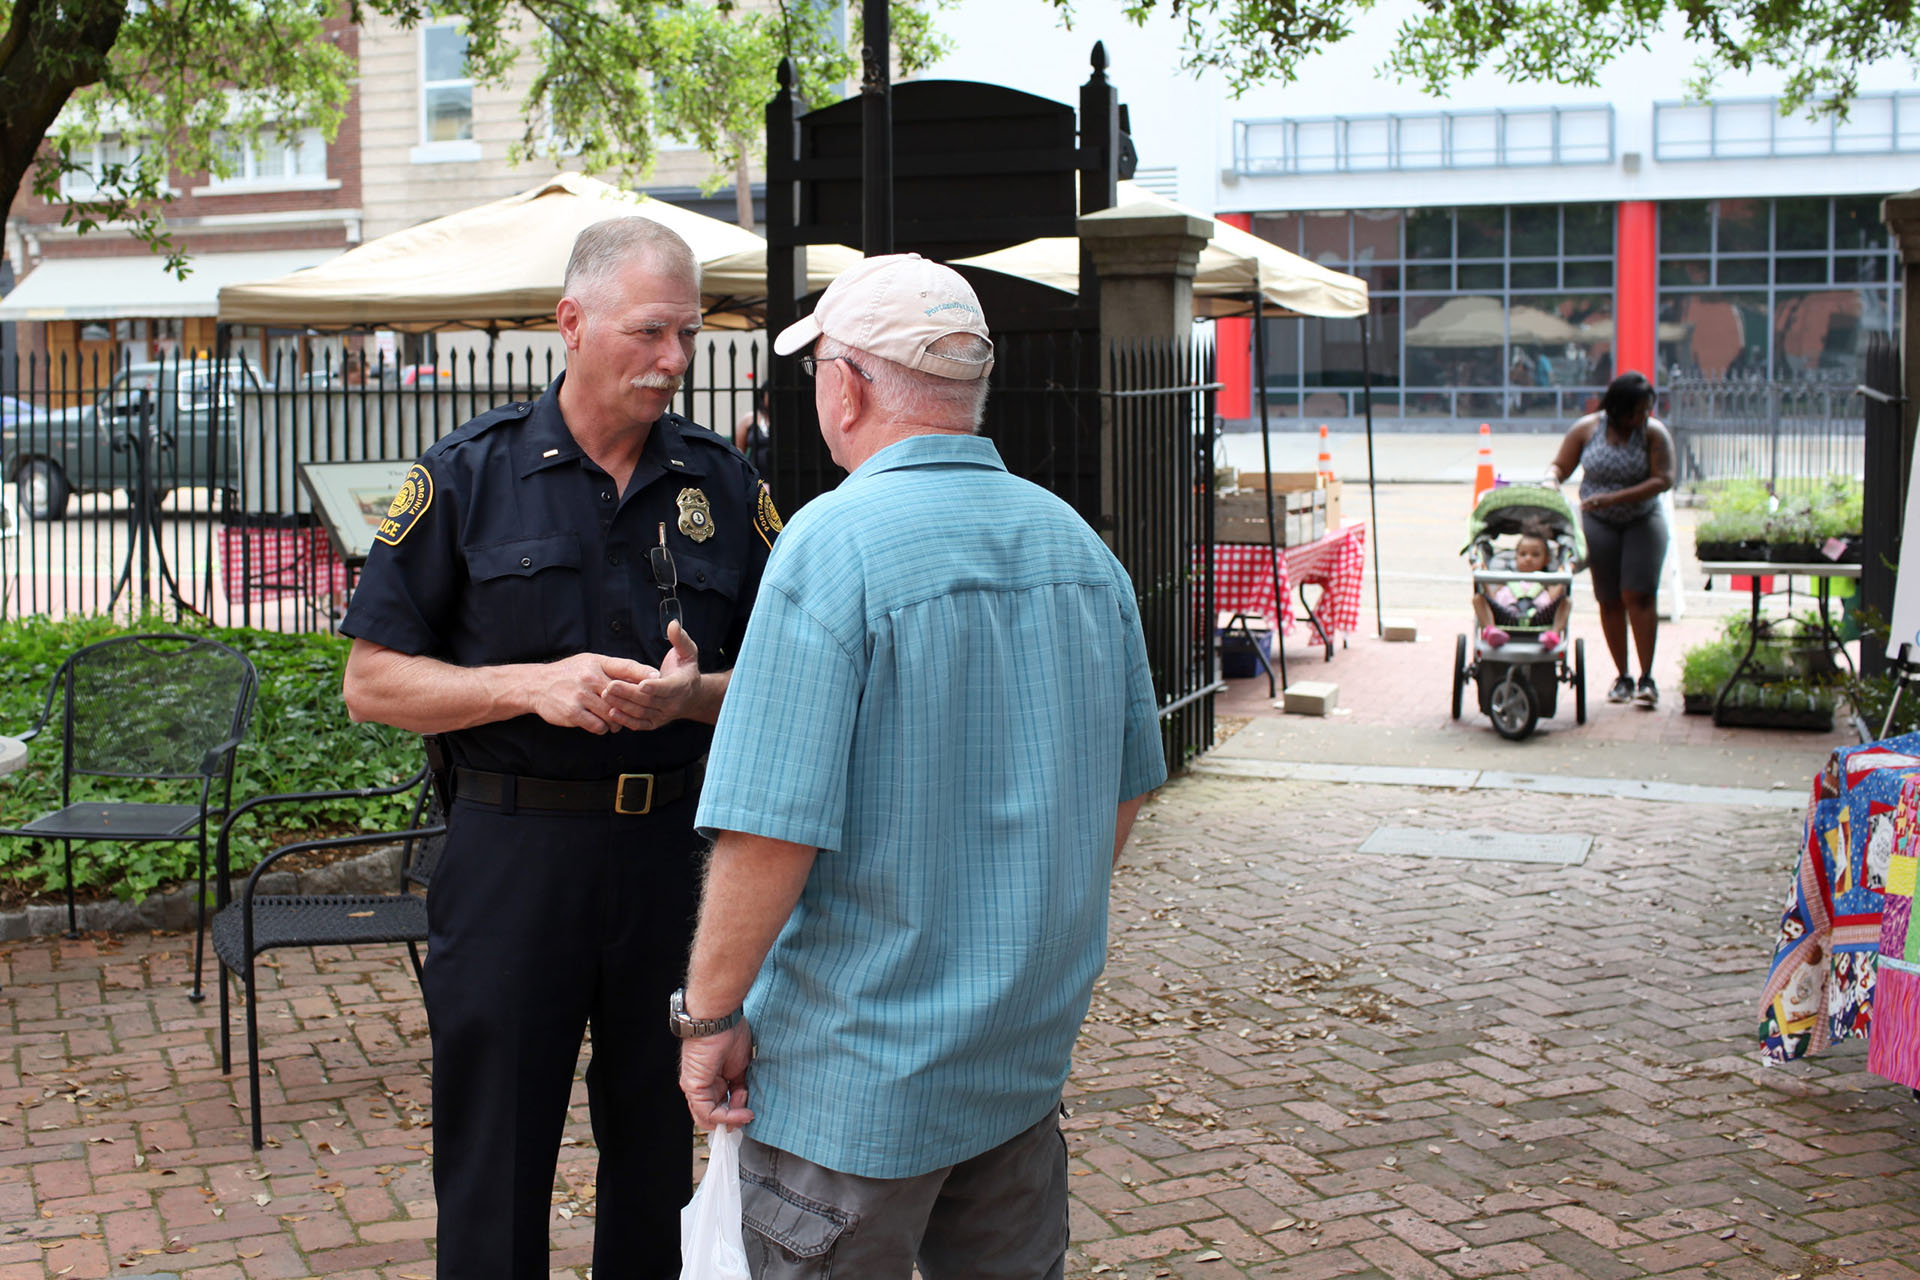 A police officer and citizen have a friendly conversation